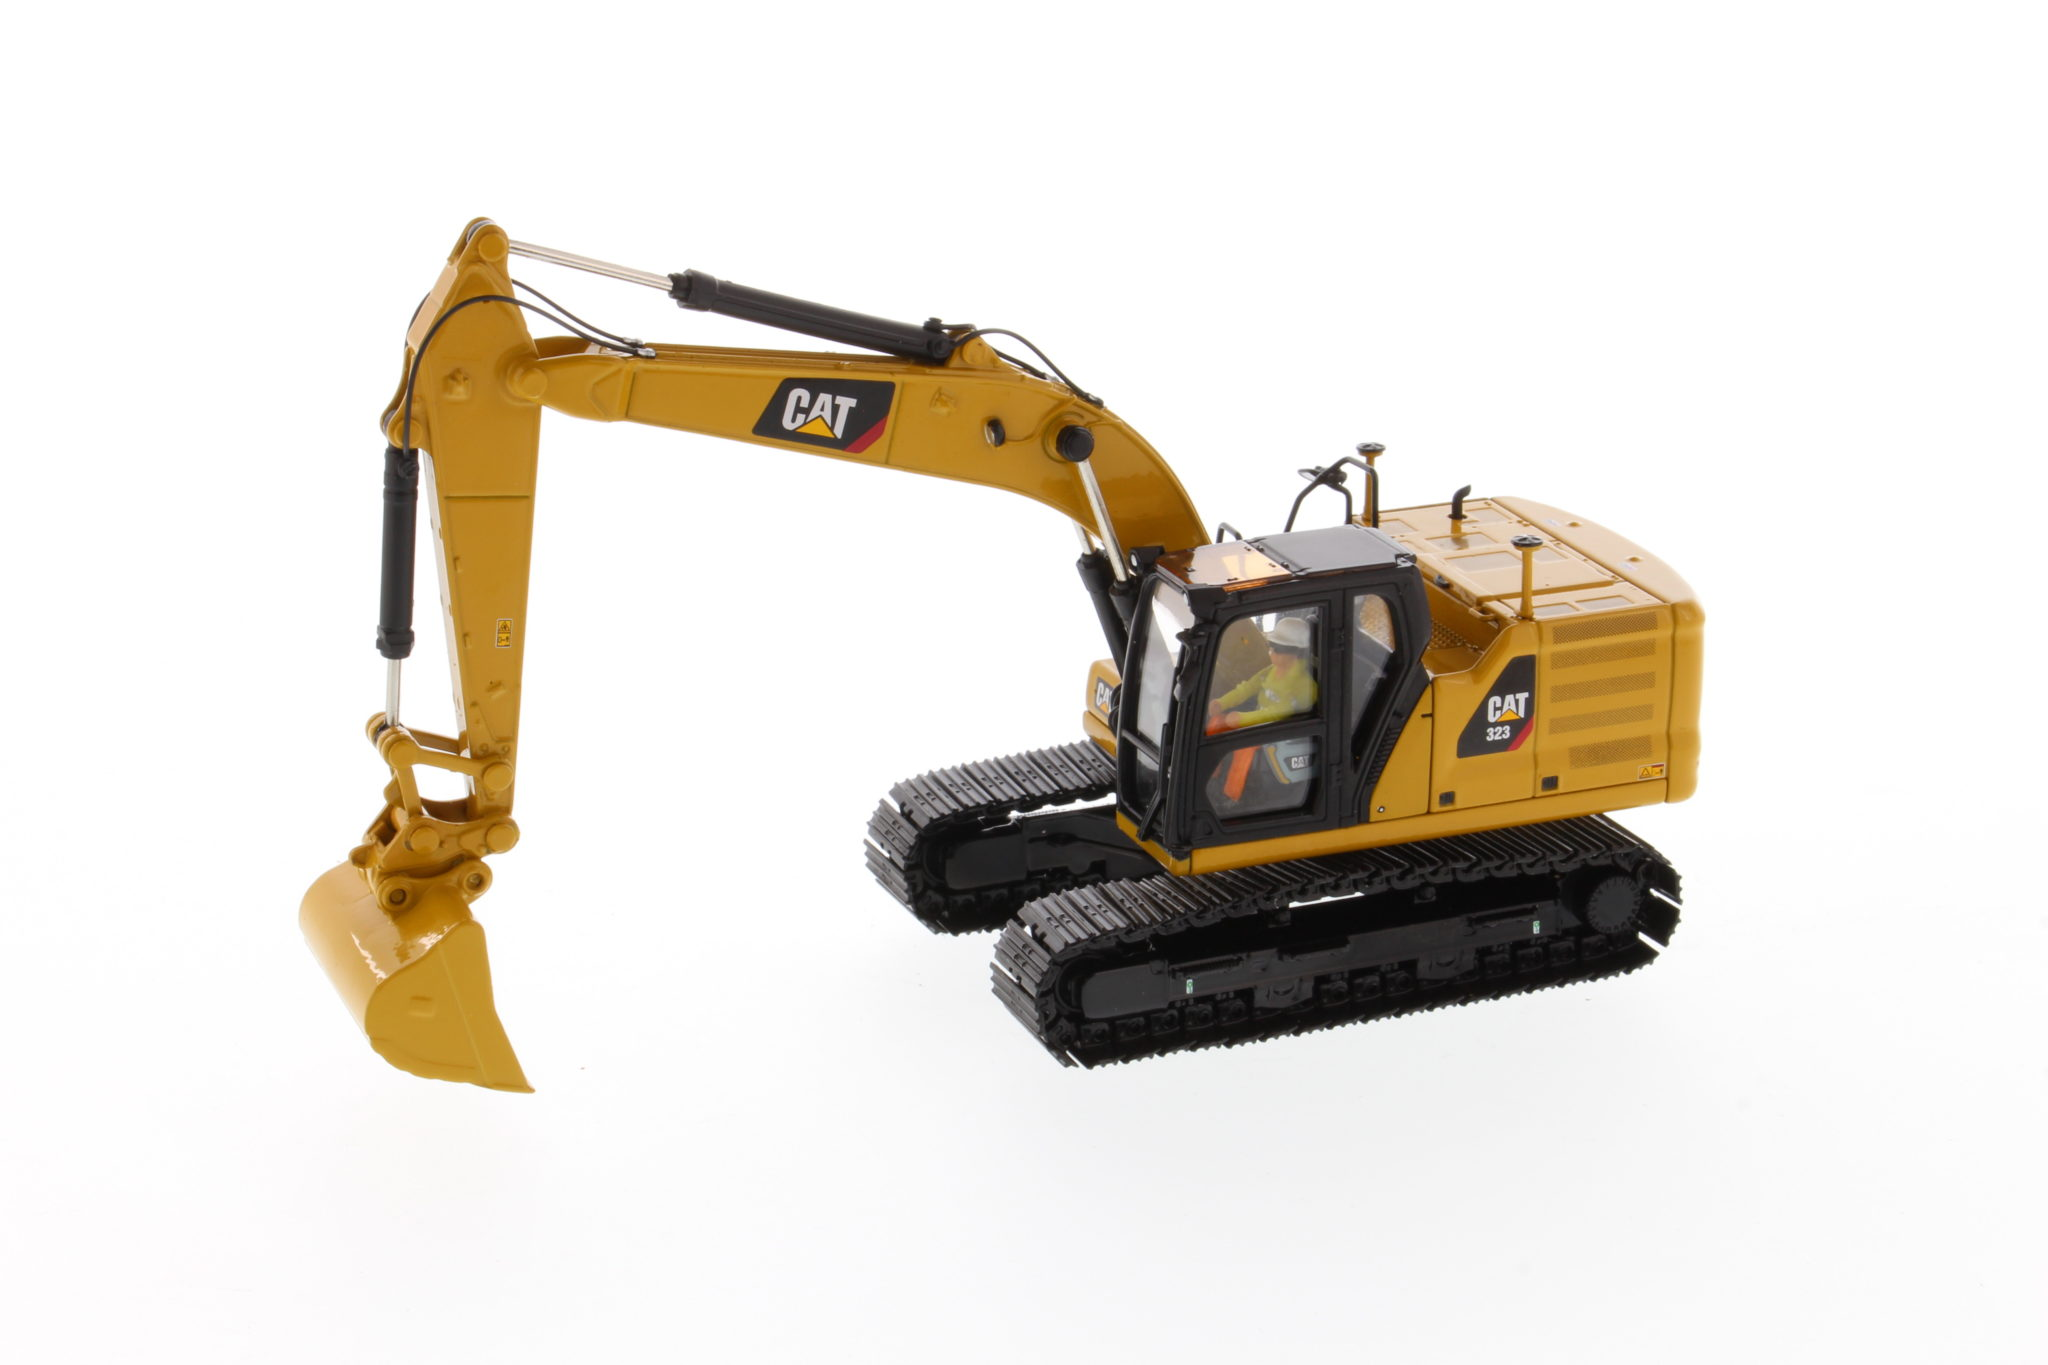 Diecast Masters CAT 323 Hydraulic Excavator Next Generation Design with work tools - Sealed Box - Image 2 of 3